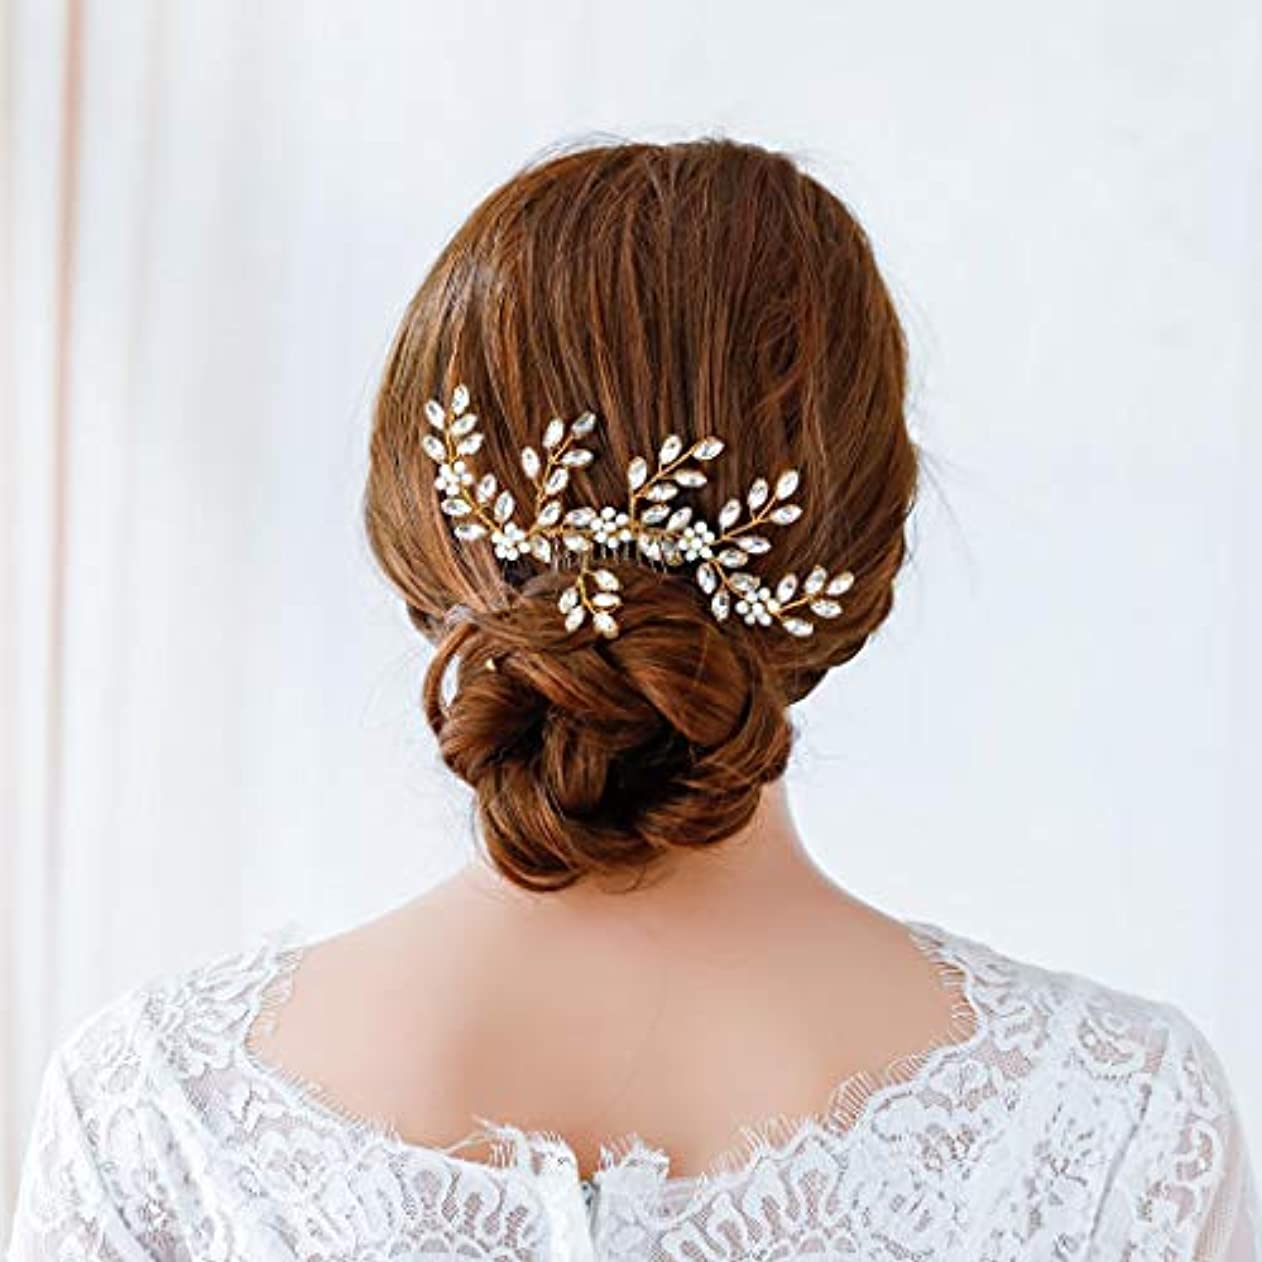 Jovono Bride Wedding Hair Comb Bridal Crystal Hair Accessories Beaded Headpieces for Women and Girls (Gold) [並行輸入品]